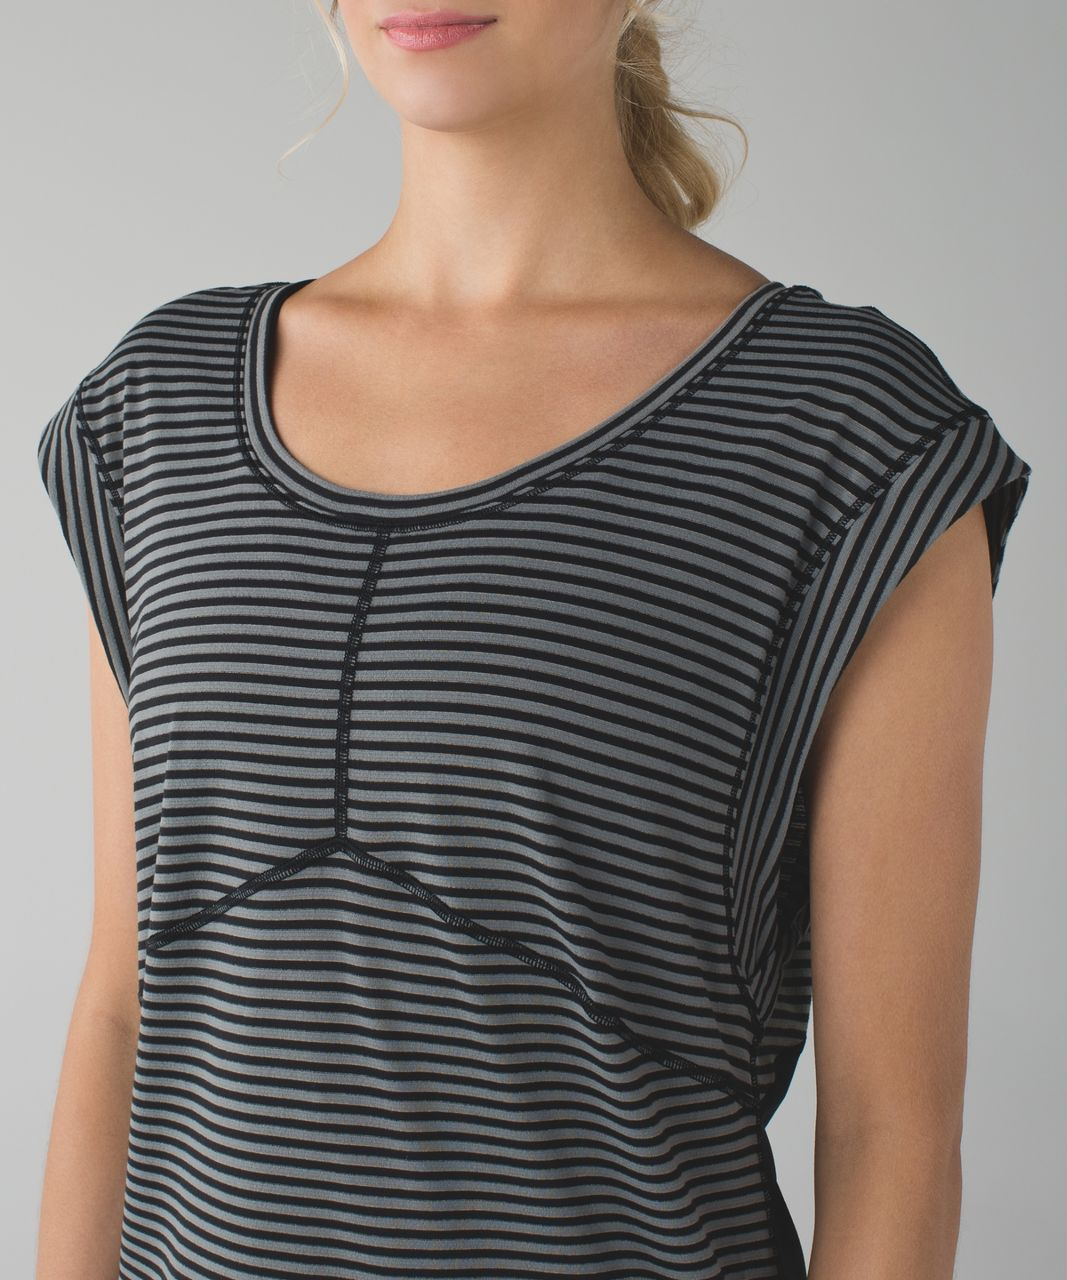 Lululemon Get Sweat Tee - Silver Stripe Black Slate / Black